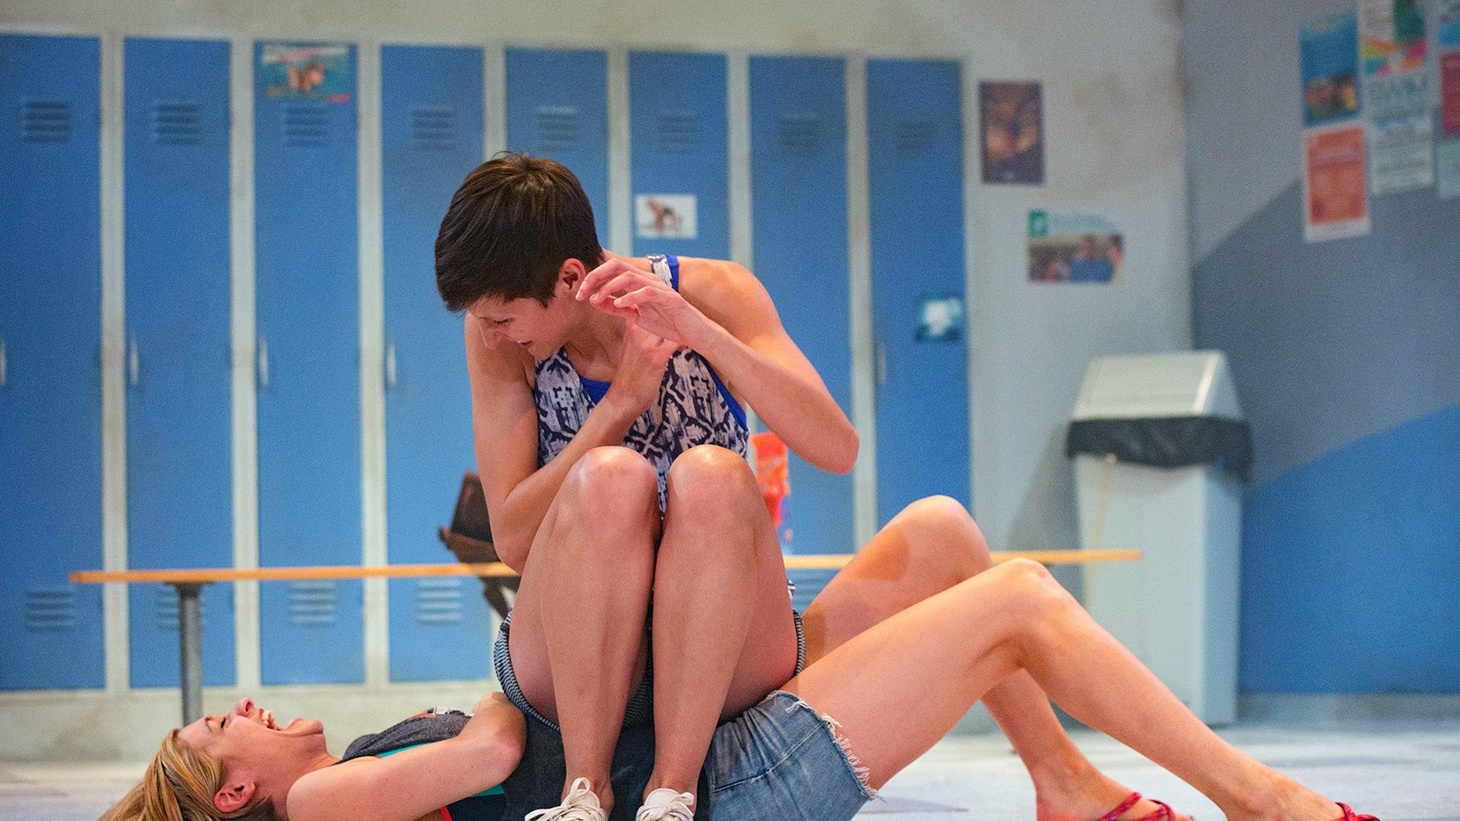 Dry Land is not a play for everyone. At its center is a teenage abortion. That's difficult territory but playwright Ruby Rae Spiegel takes responsibility for it in all its power and messiness.